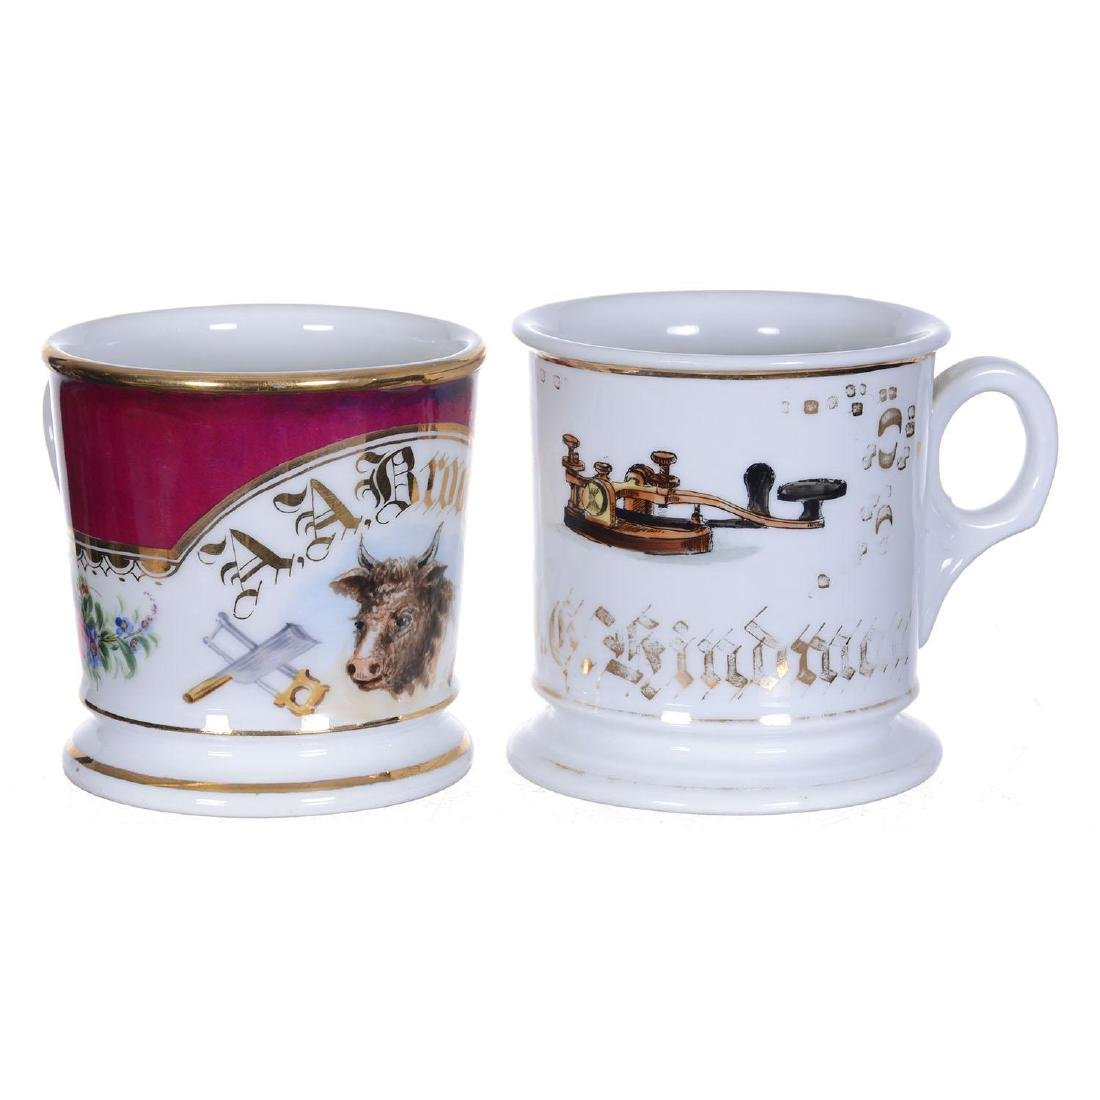 "(2) 3.75"" Occupational Shaving Mugs"